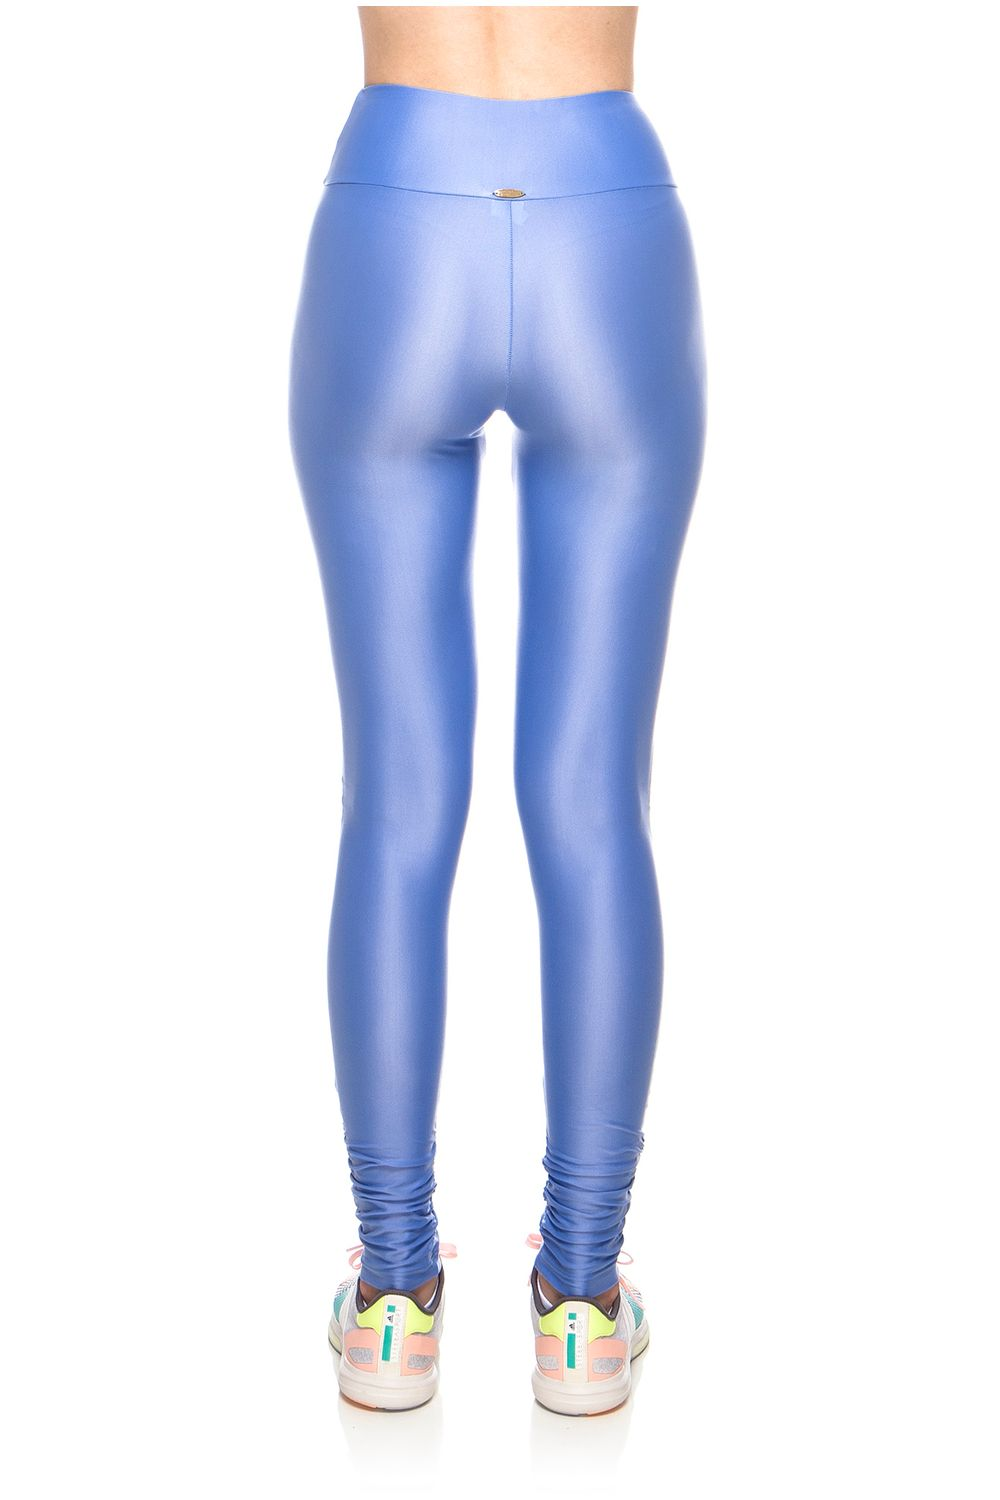 Leggings-Fitness-Fran-Micro---15-